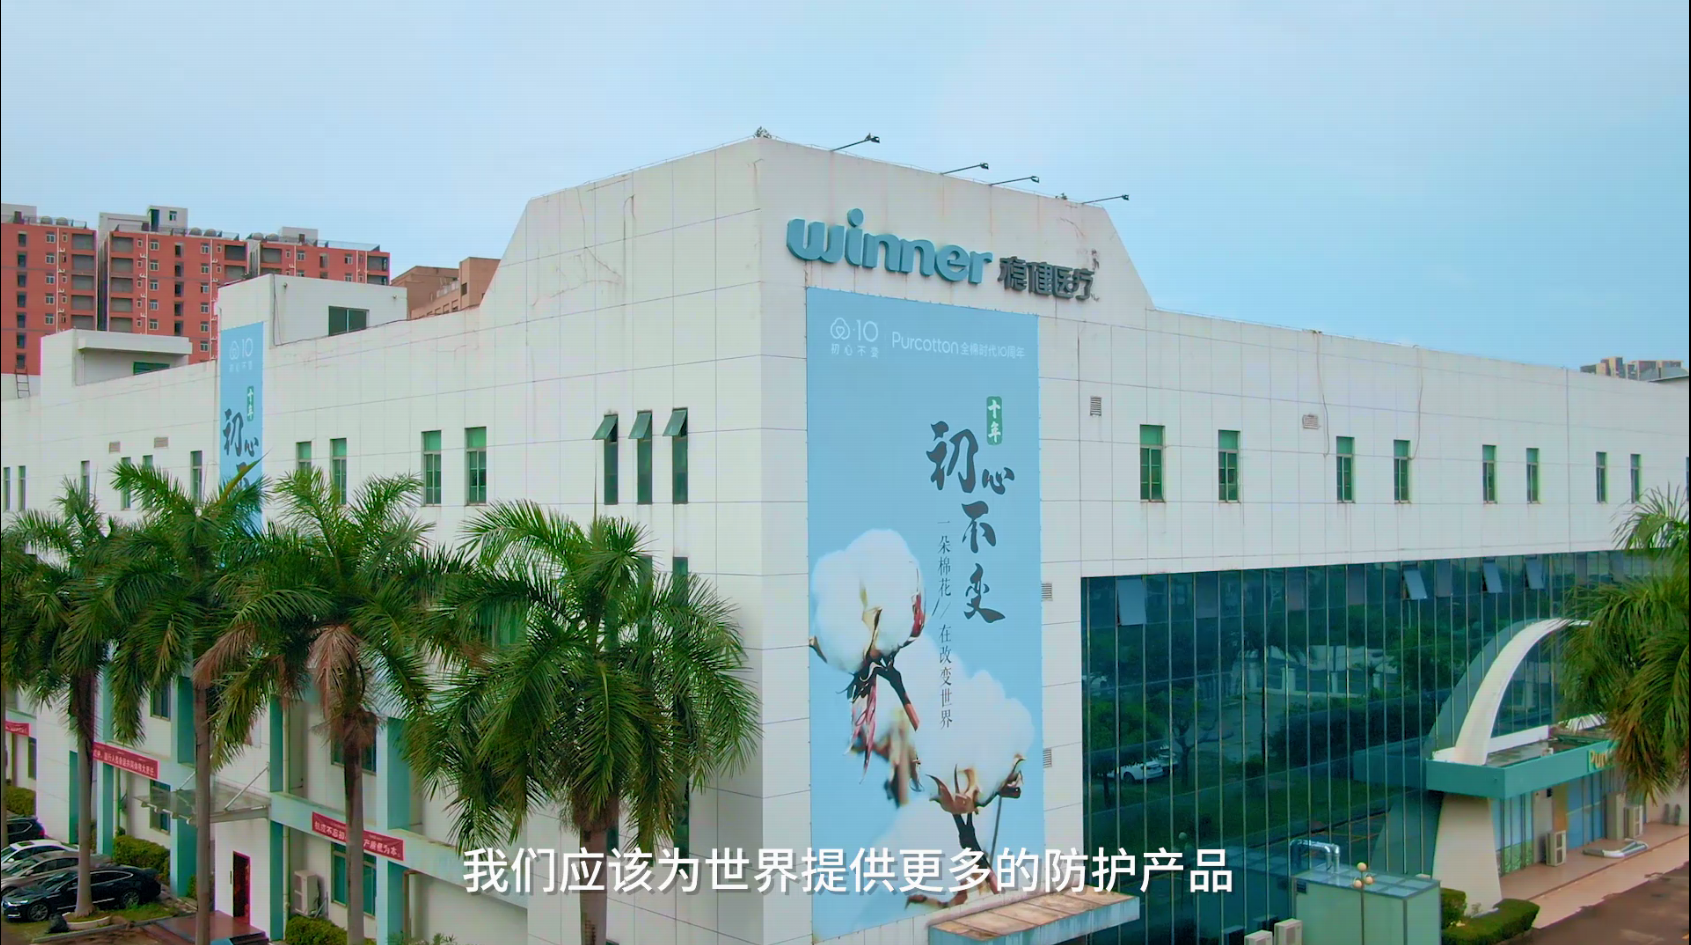 """Winner Medical's Anti-coronavirus Story—""""You Protect the World, and We Protect You"""""""